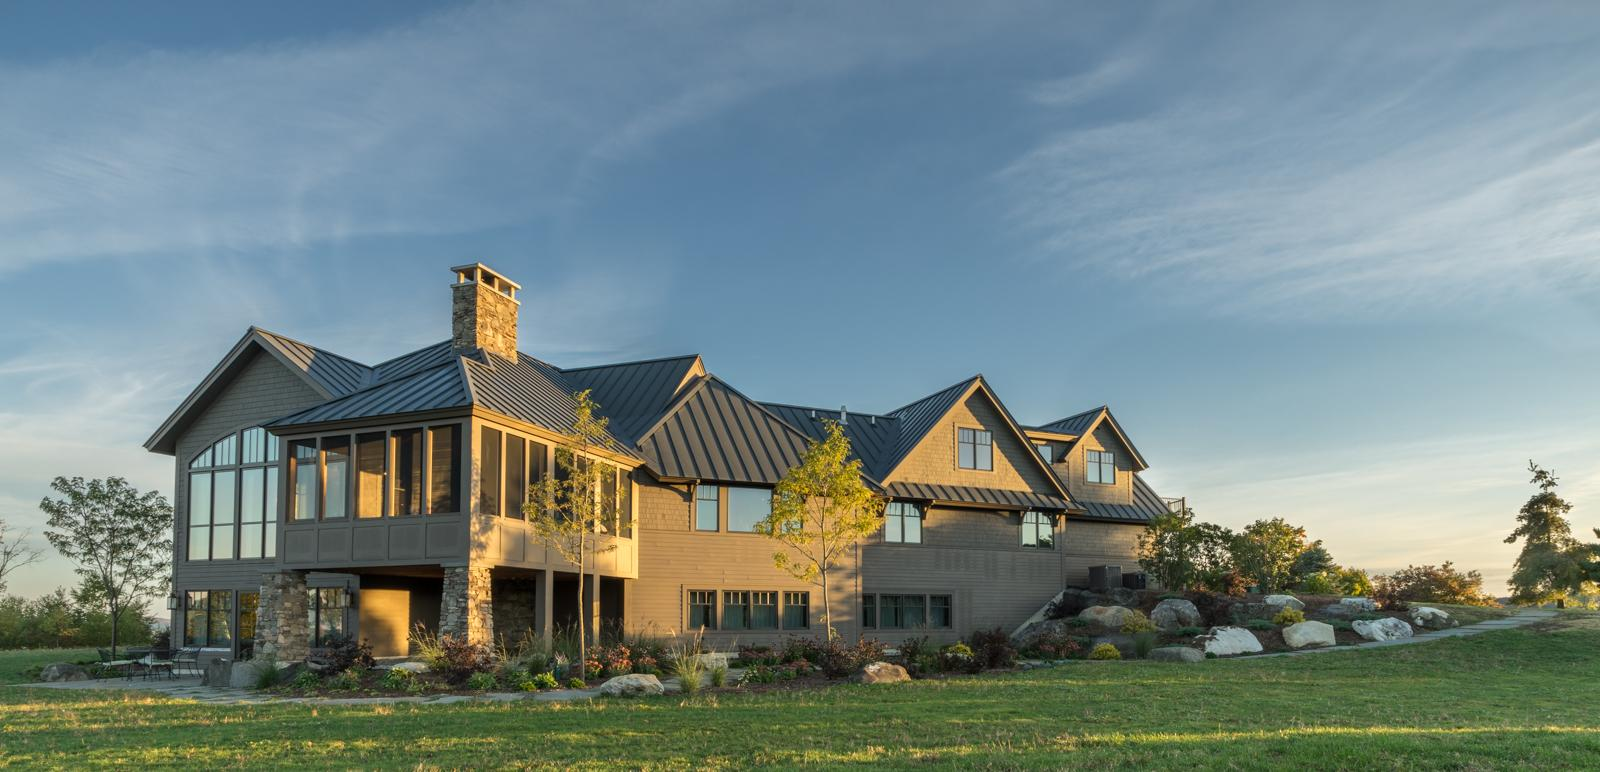 Sugar Pine Hills Vermont Luxury Homes Mansions For